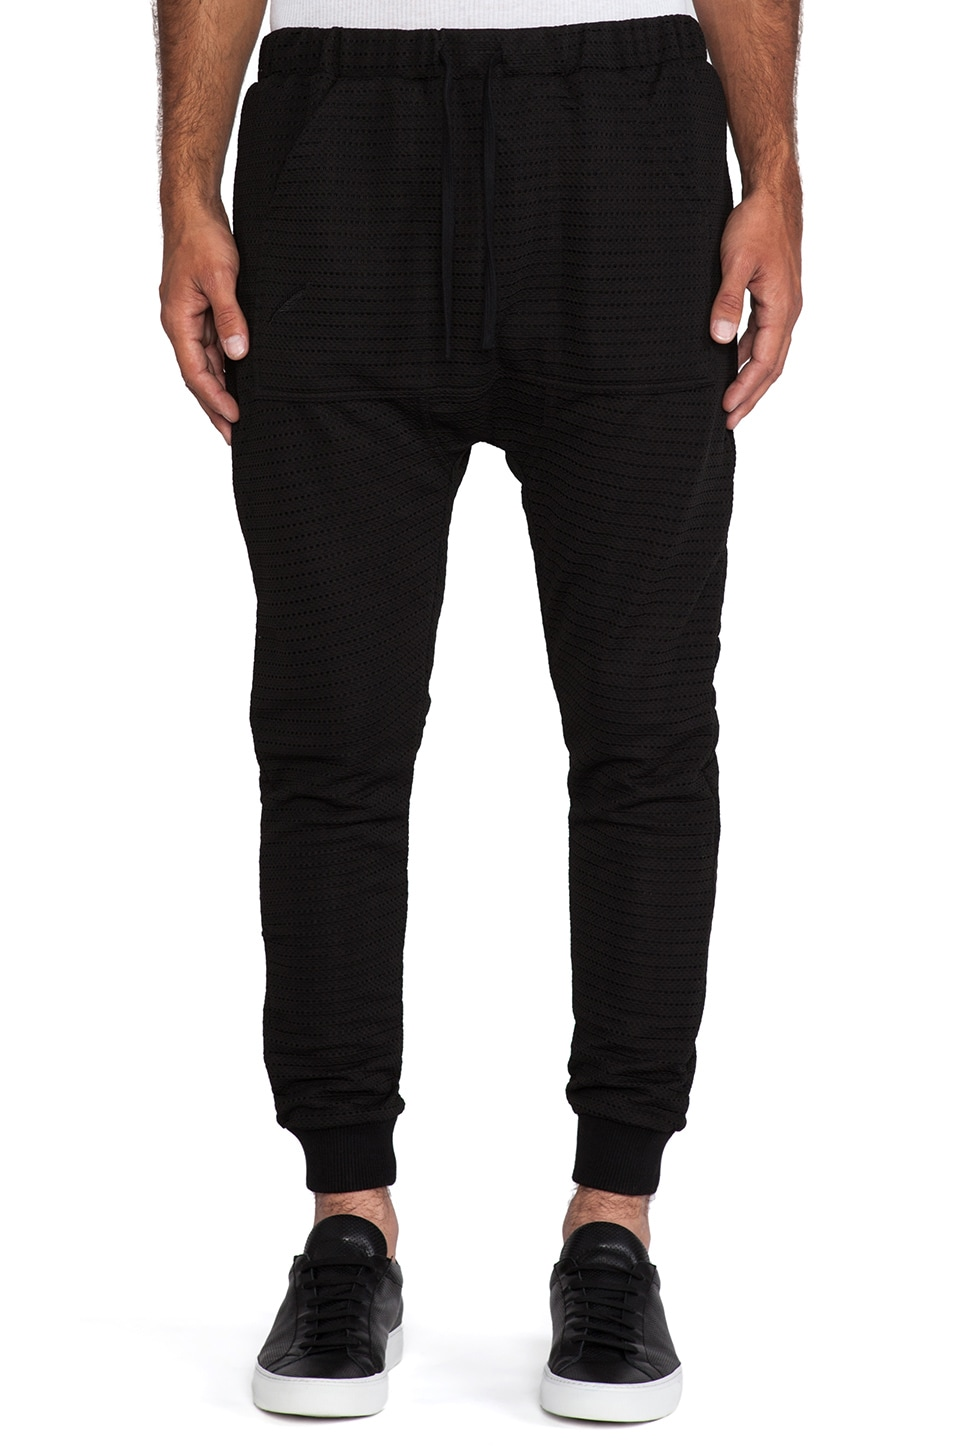 Publish Ricko Pant in Black